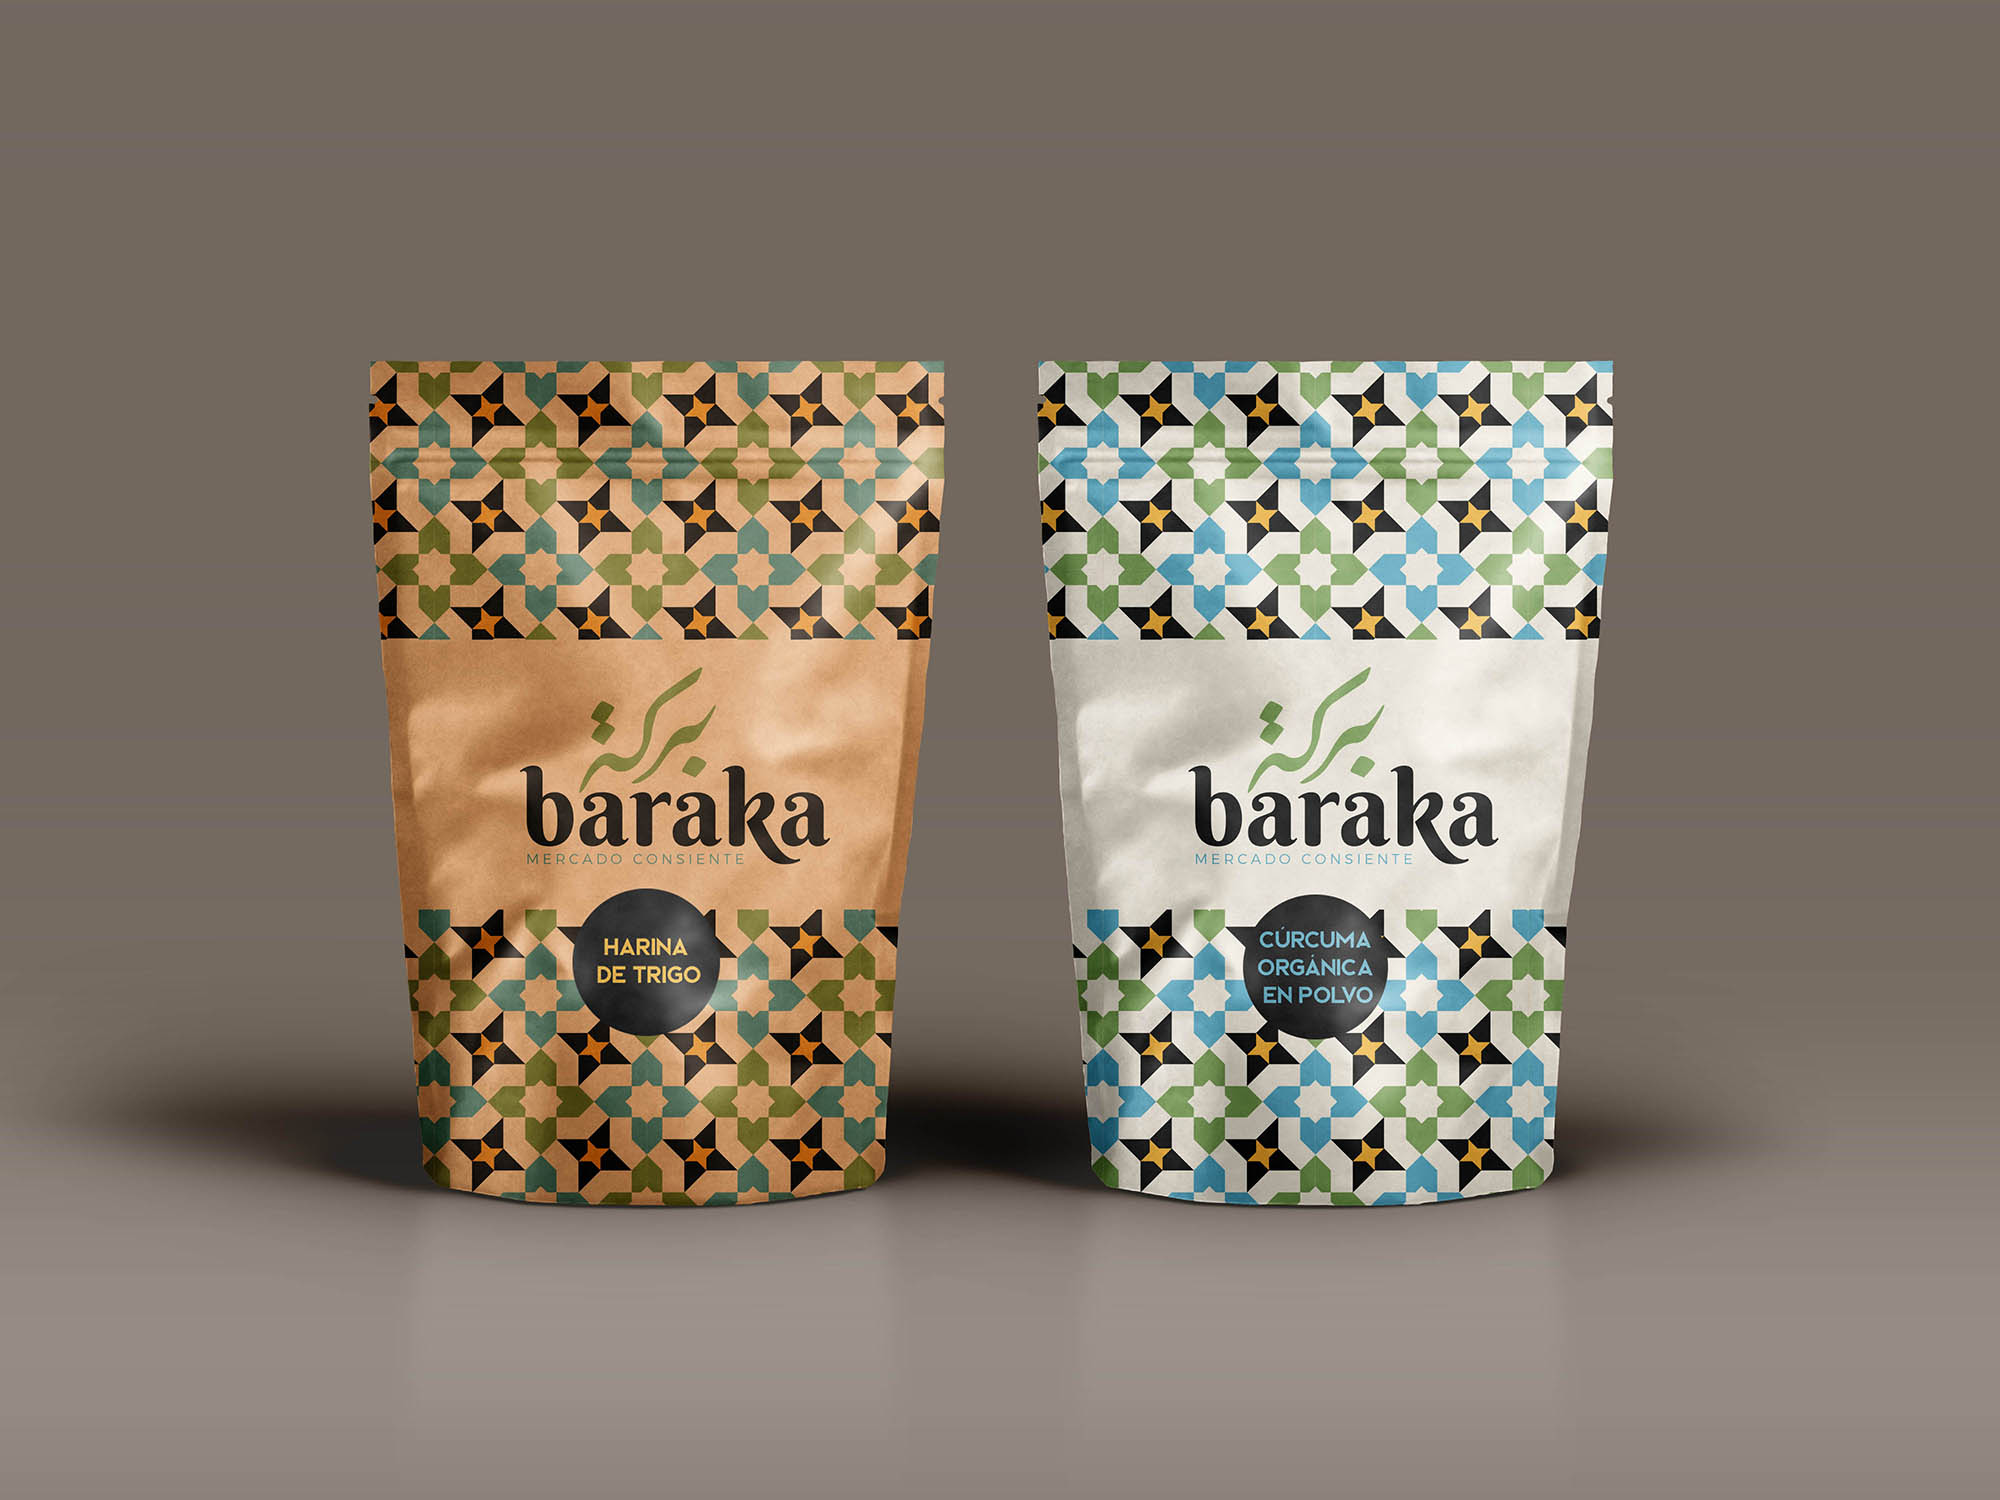 Lebanese Mosaic Influence for Sustainable Packaging and Branding